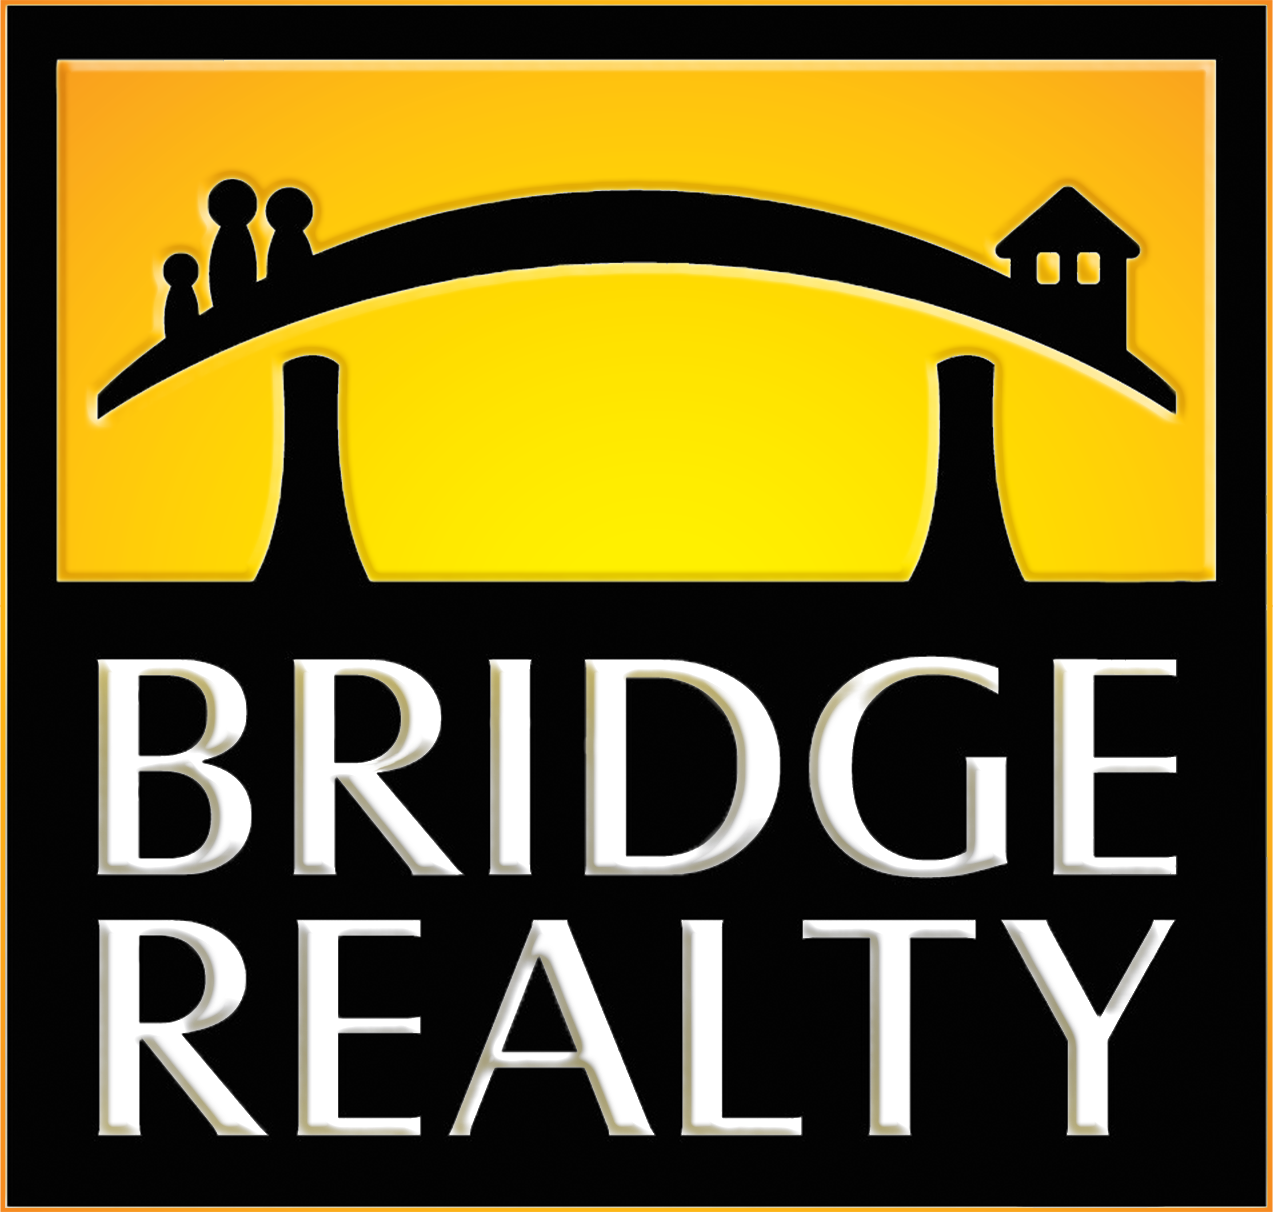 Bridge Realty LLC logo